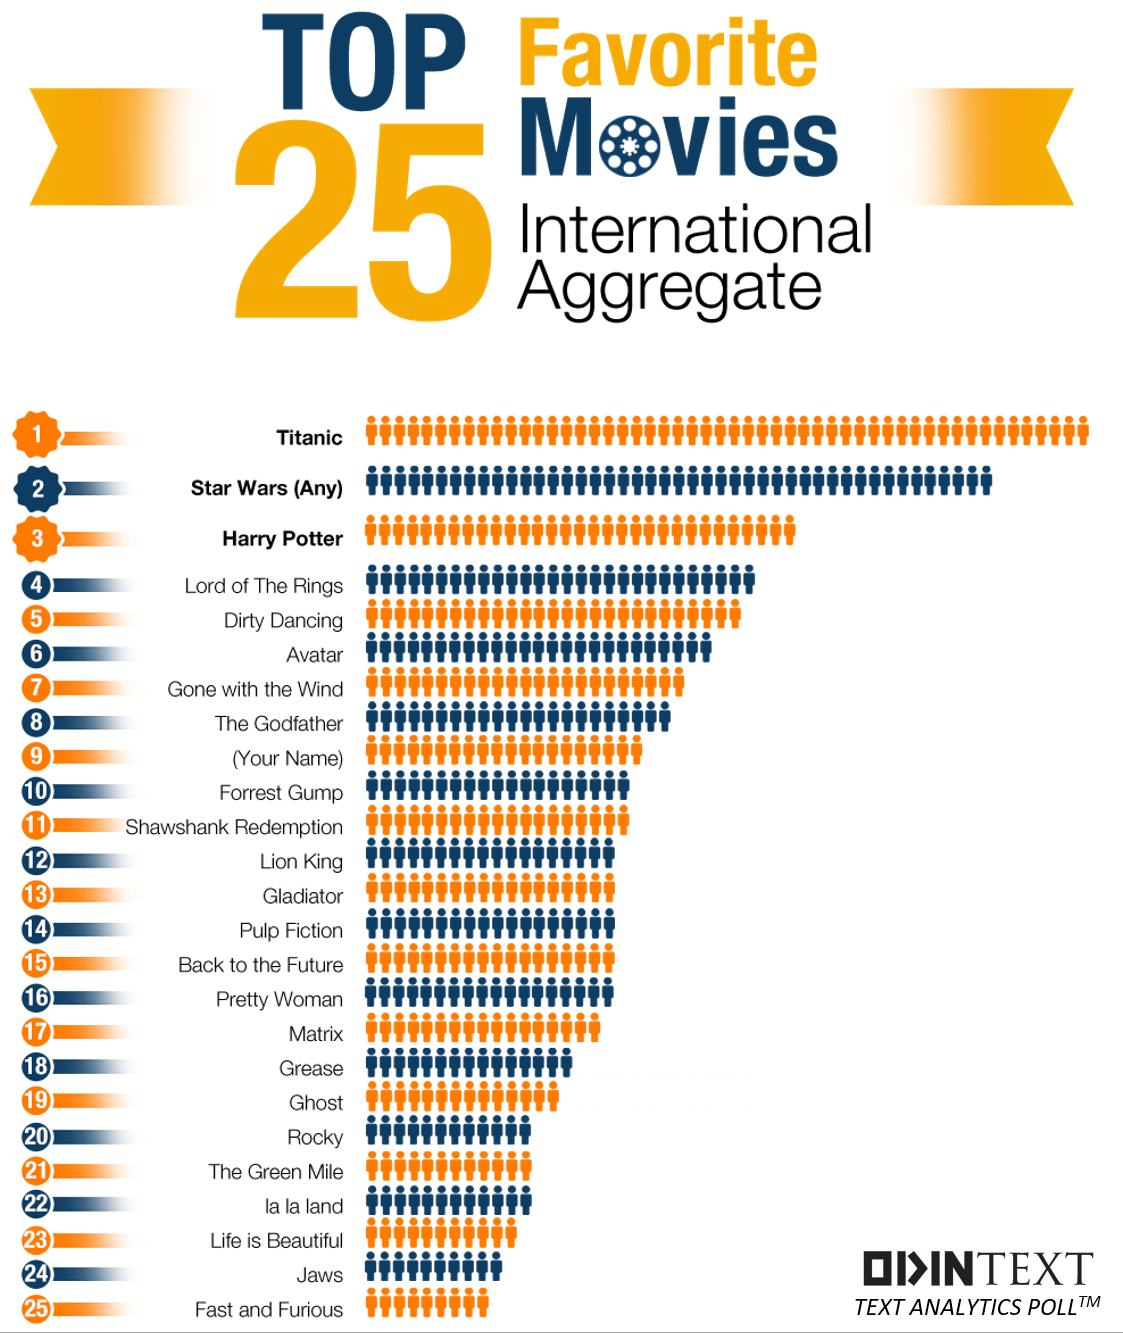 0TopMoviesEver-machine-translation-text-analytics.png